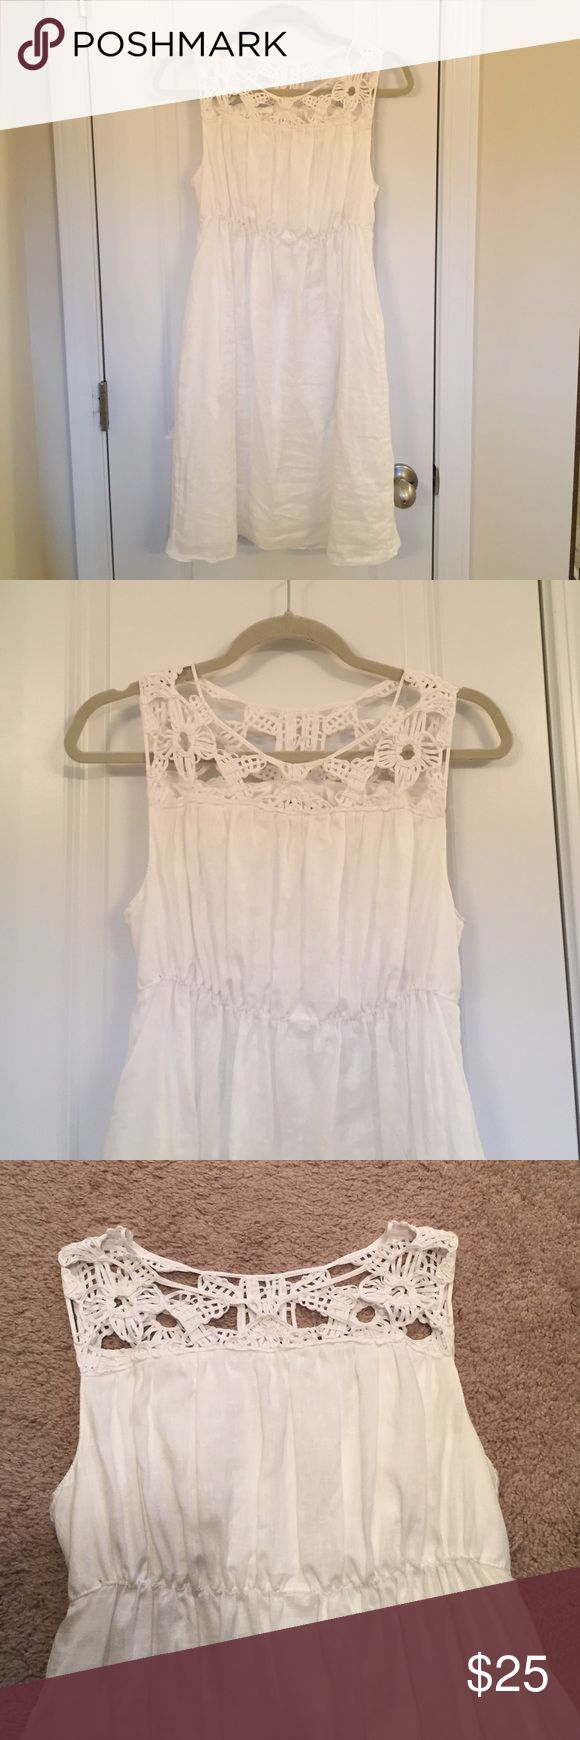 white crocheted top Sophie Max dress White linen Sophie Max dress. Top neck of dress is crocheted. Only worn once for a few hours. Shell is 100% linen. Lining is 97% polyester 3% spandex. Sophie Max Dresses